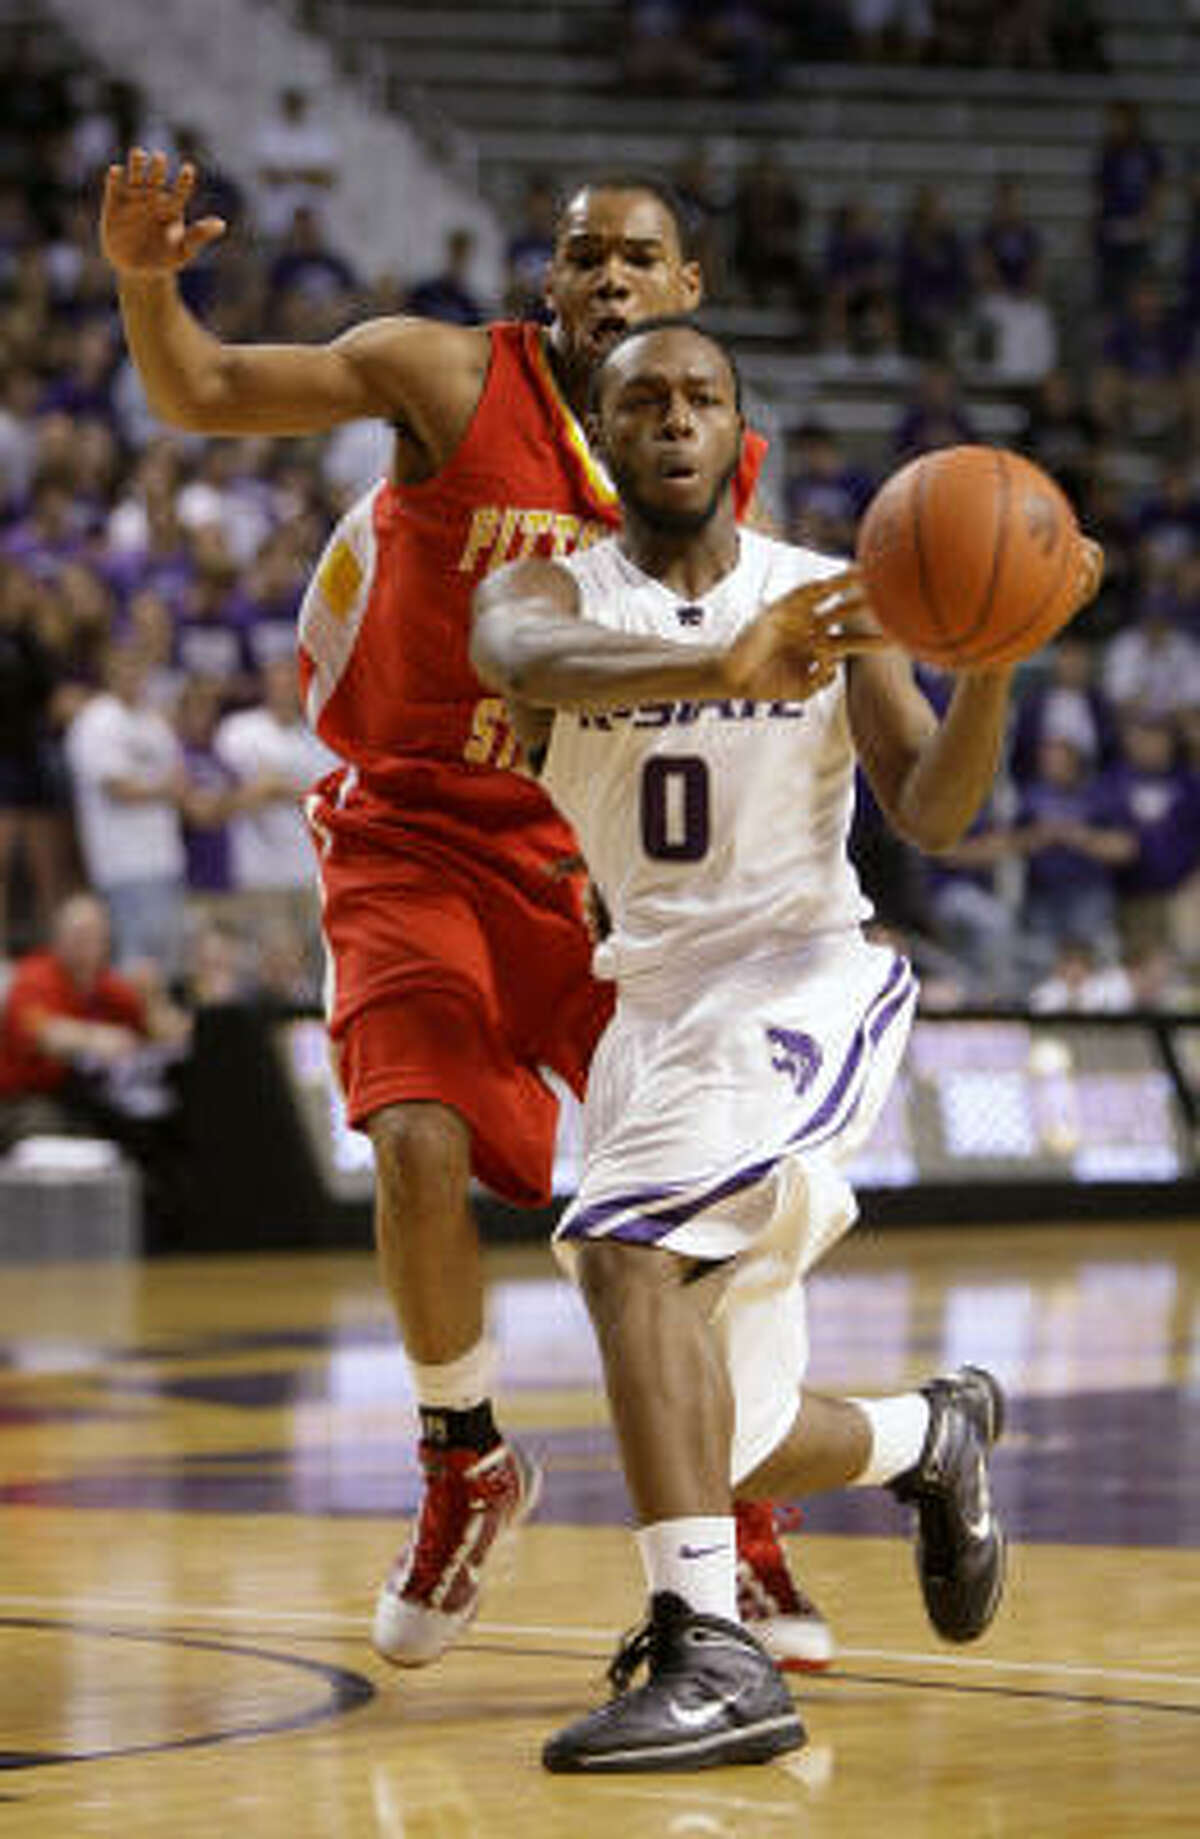 3. Kansas State Jacob Pullen is part of a starting backcourt that returns intact. The Wildcats also have 82 percent of their scoring back from last year's 22-12 team. Fourth-place pick from coaches' poll could be low.